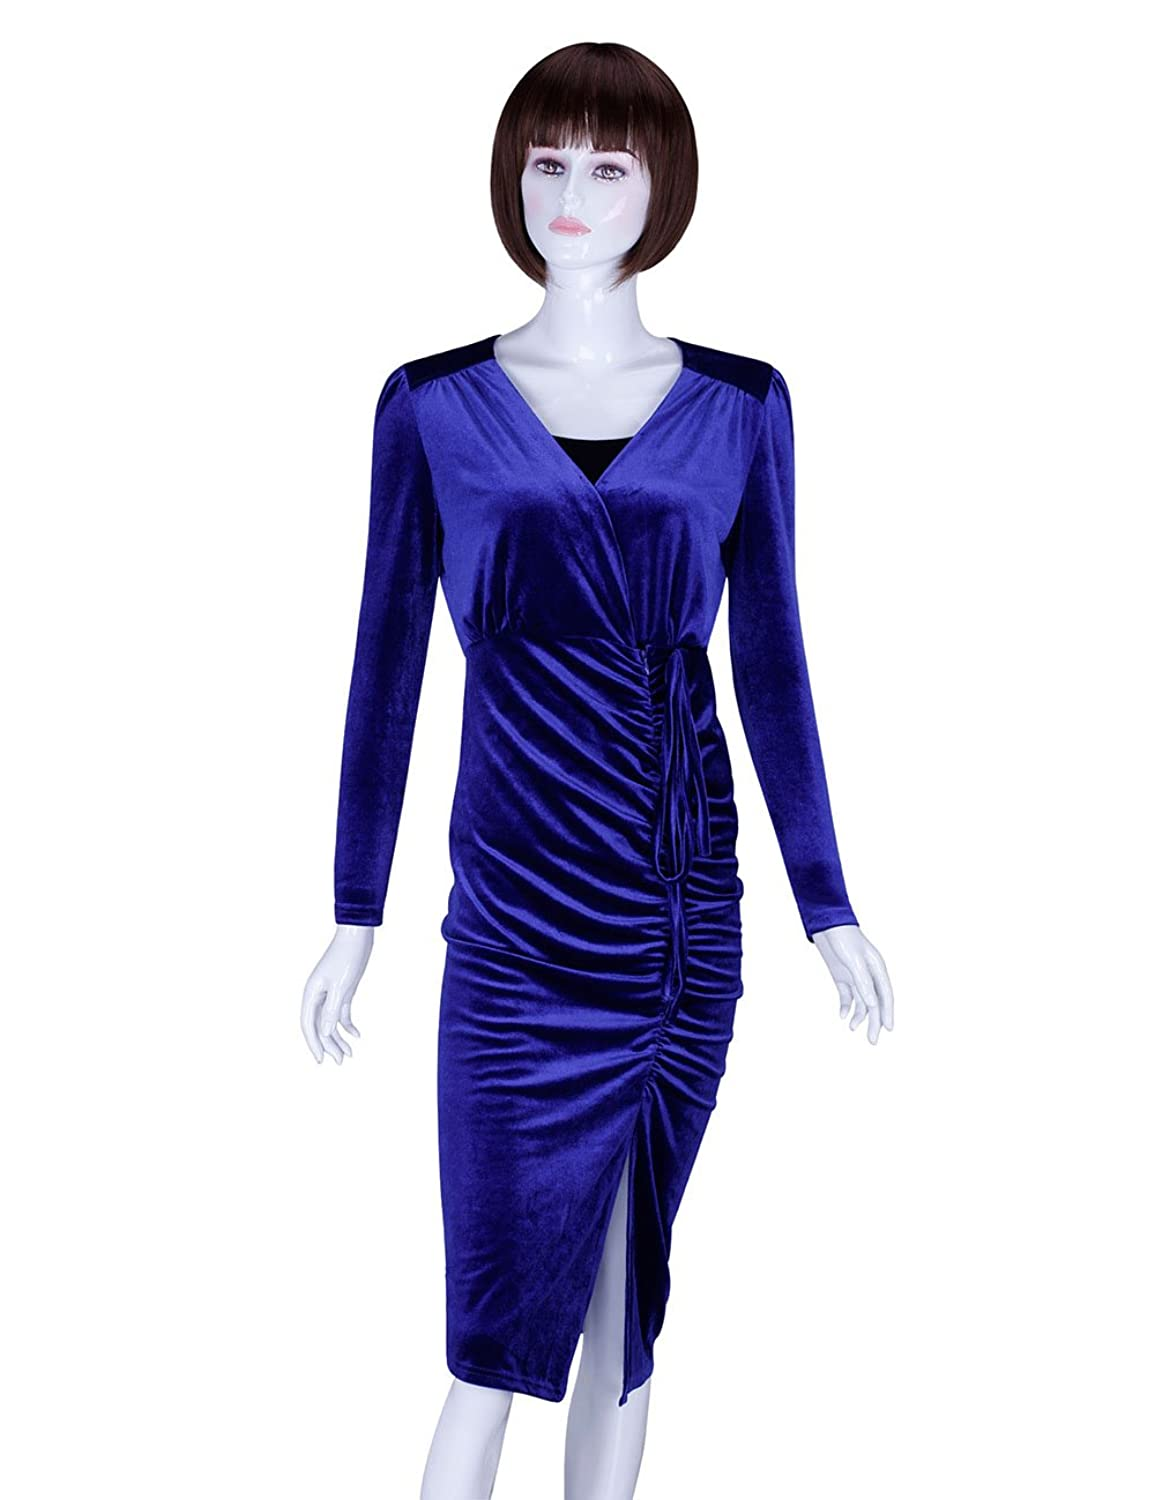 ADAMARIS Dress For Women Fall 2017 Deep V Neck Pleuche 3/4 Sleeve Slit Ruched Blue Black